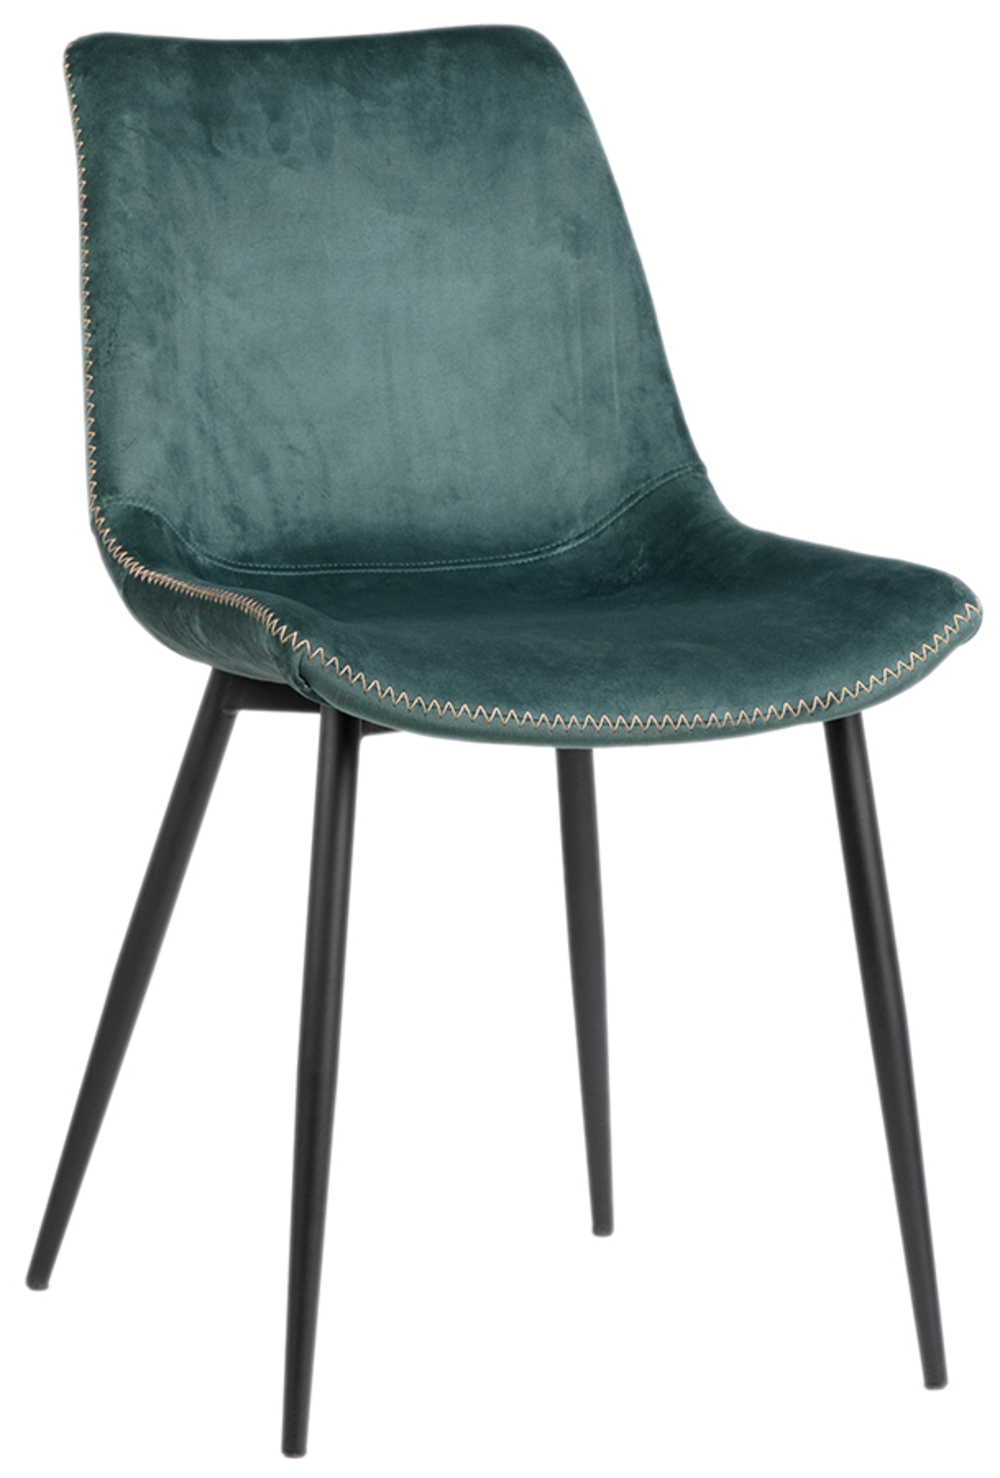 Dovetail Furniture - Massie Dining Chair